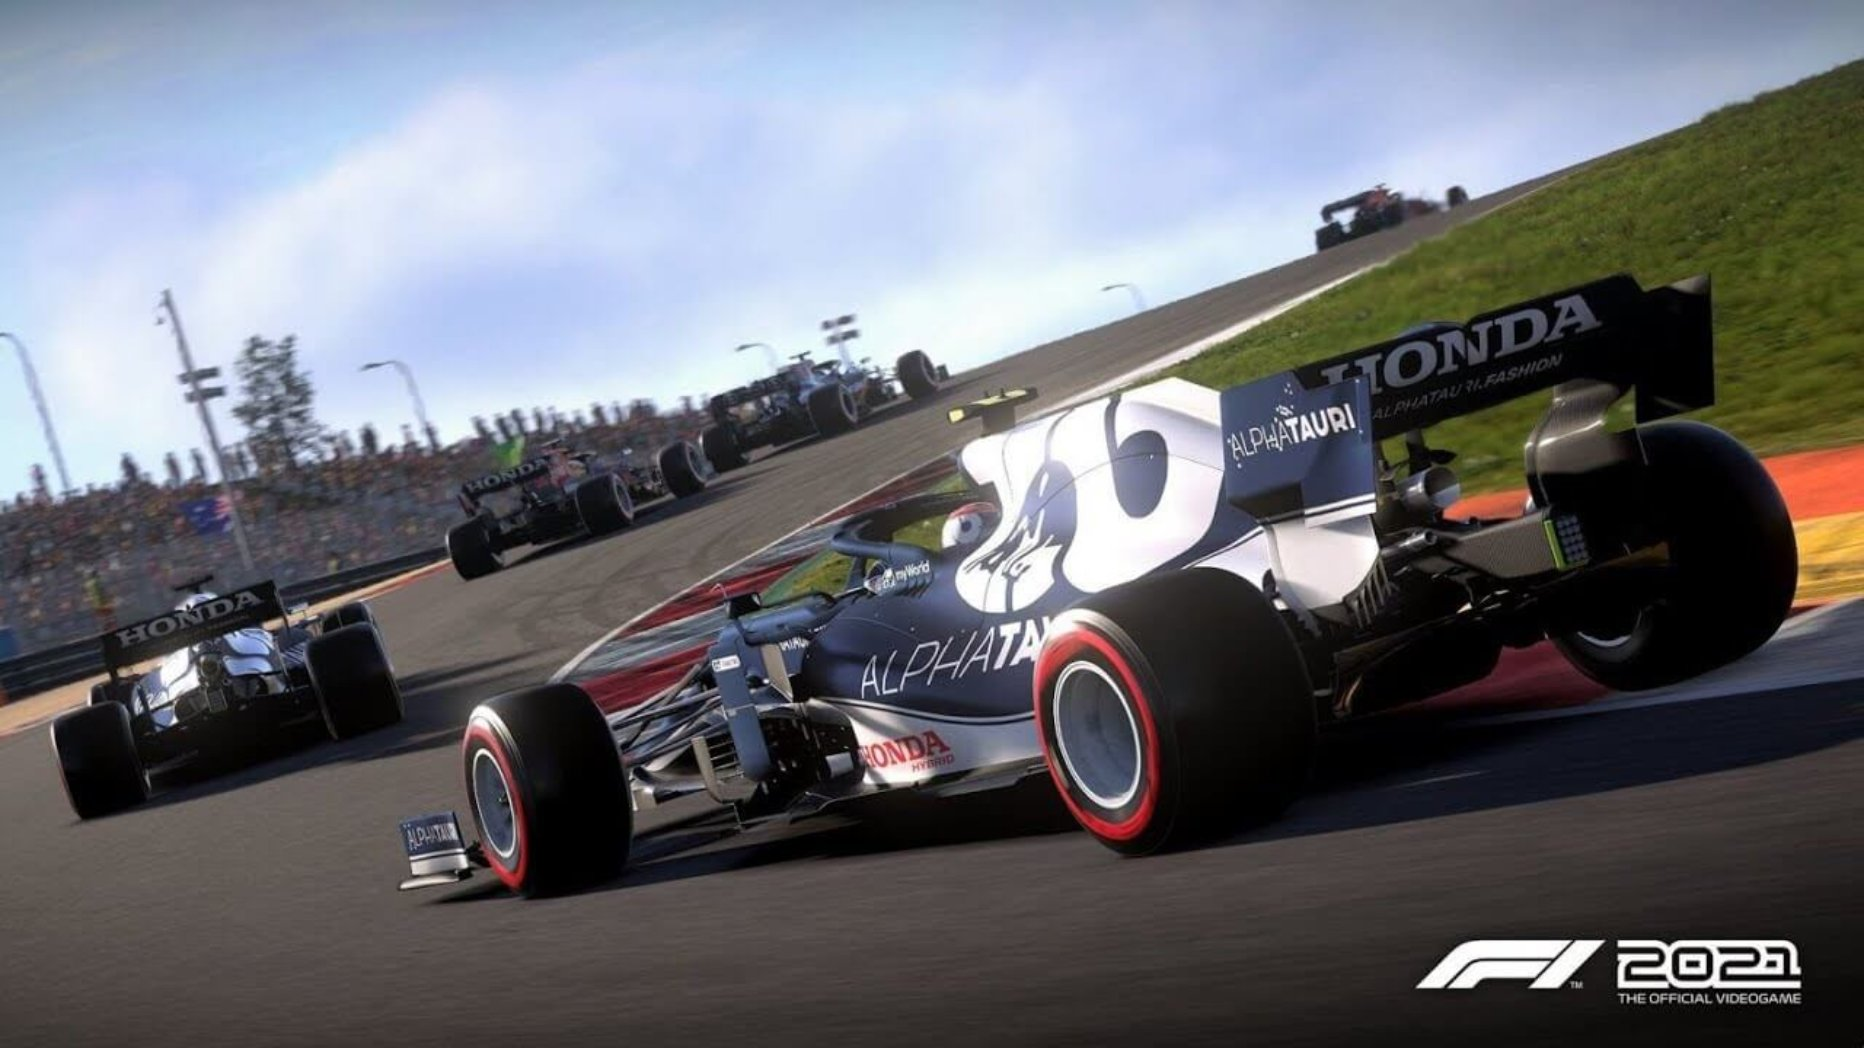 F1 2021 Fans – Check Out A Race On The New Portimao Track